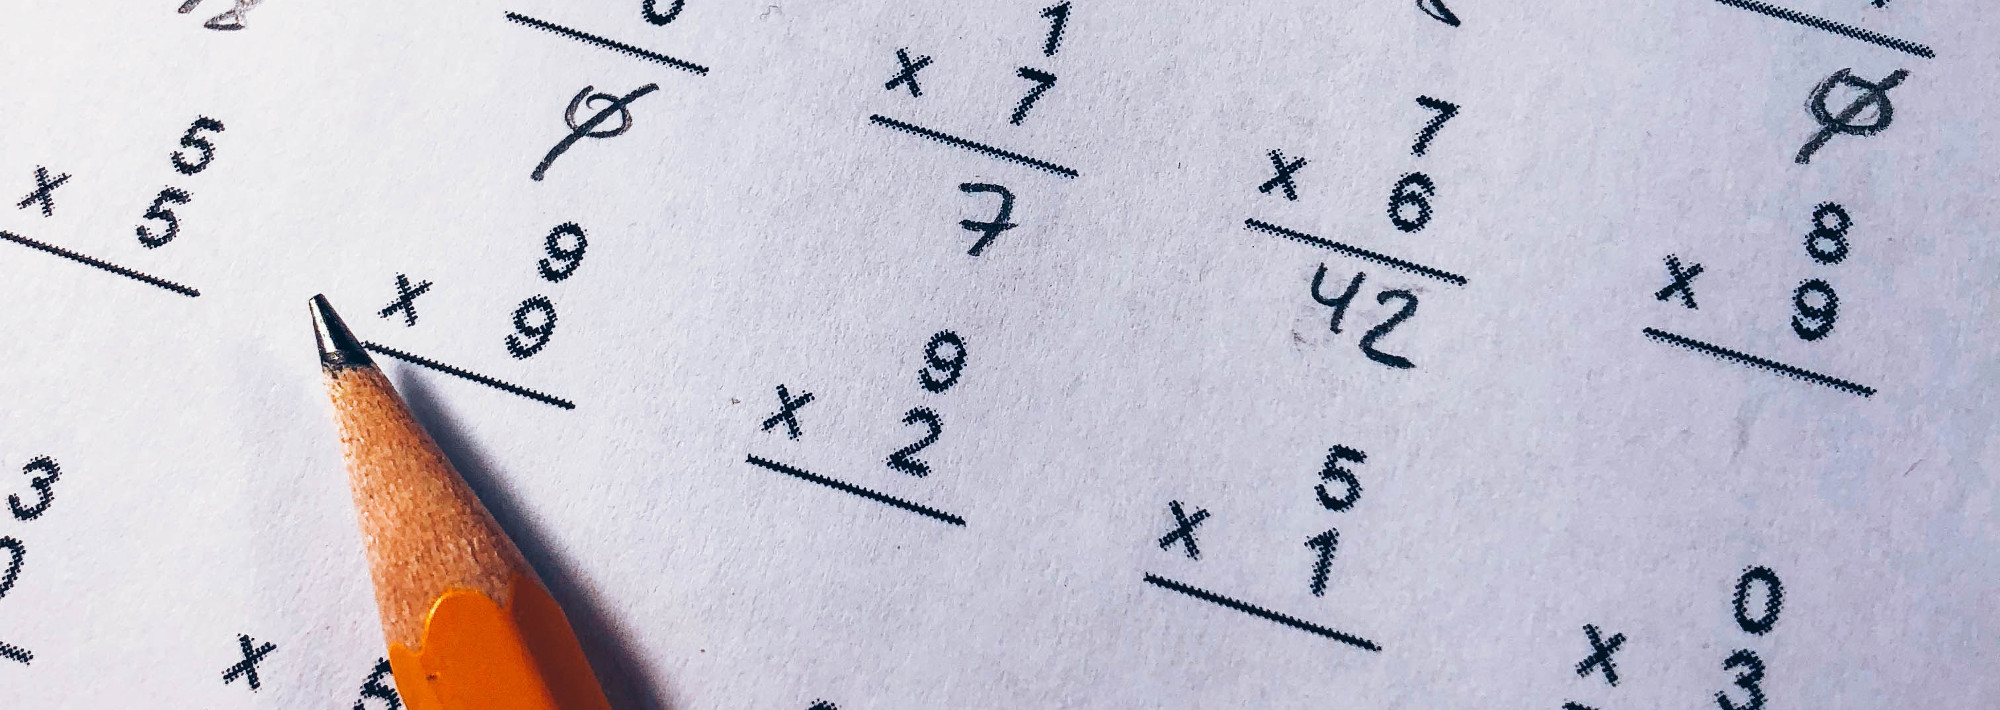 A piece of paper with single-digit multiplication problems and a pencil.